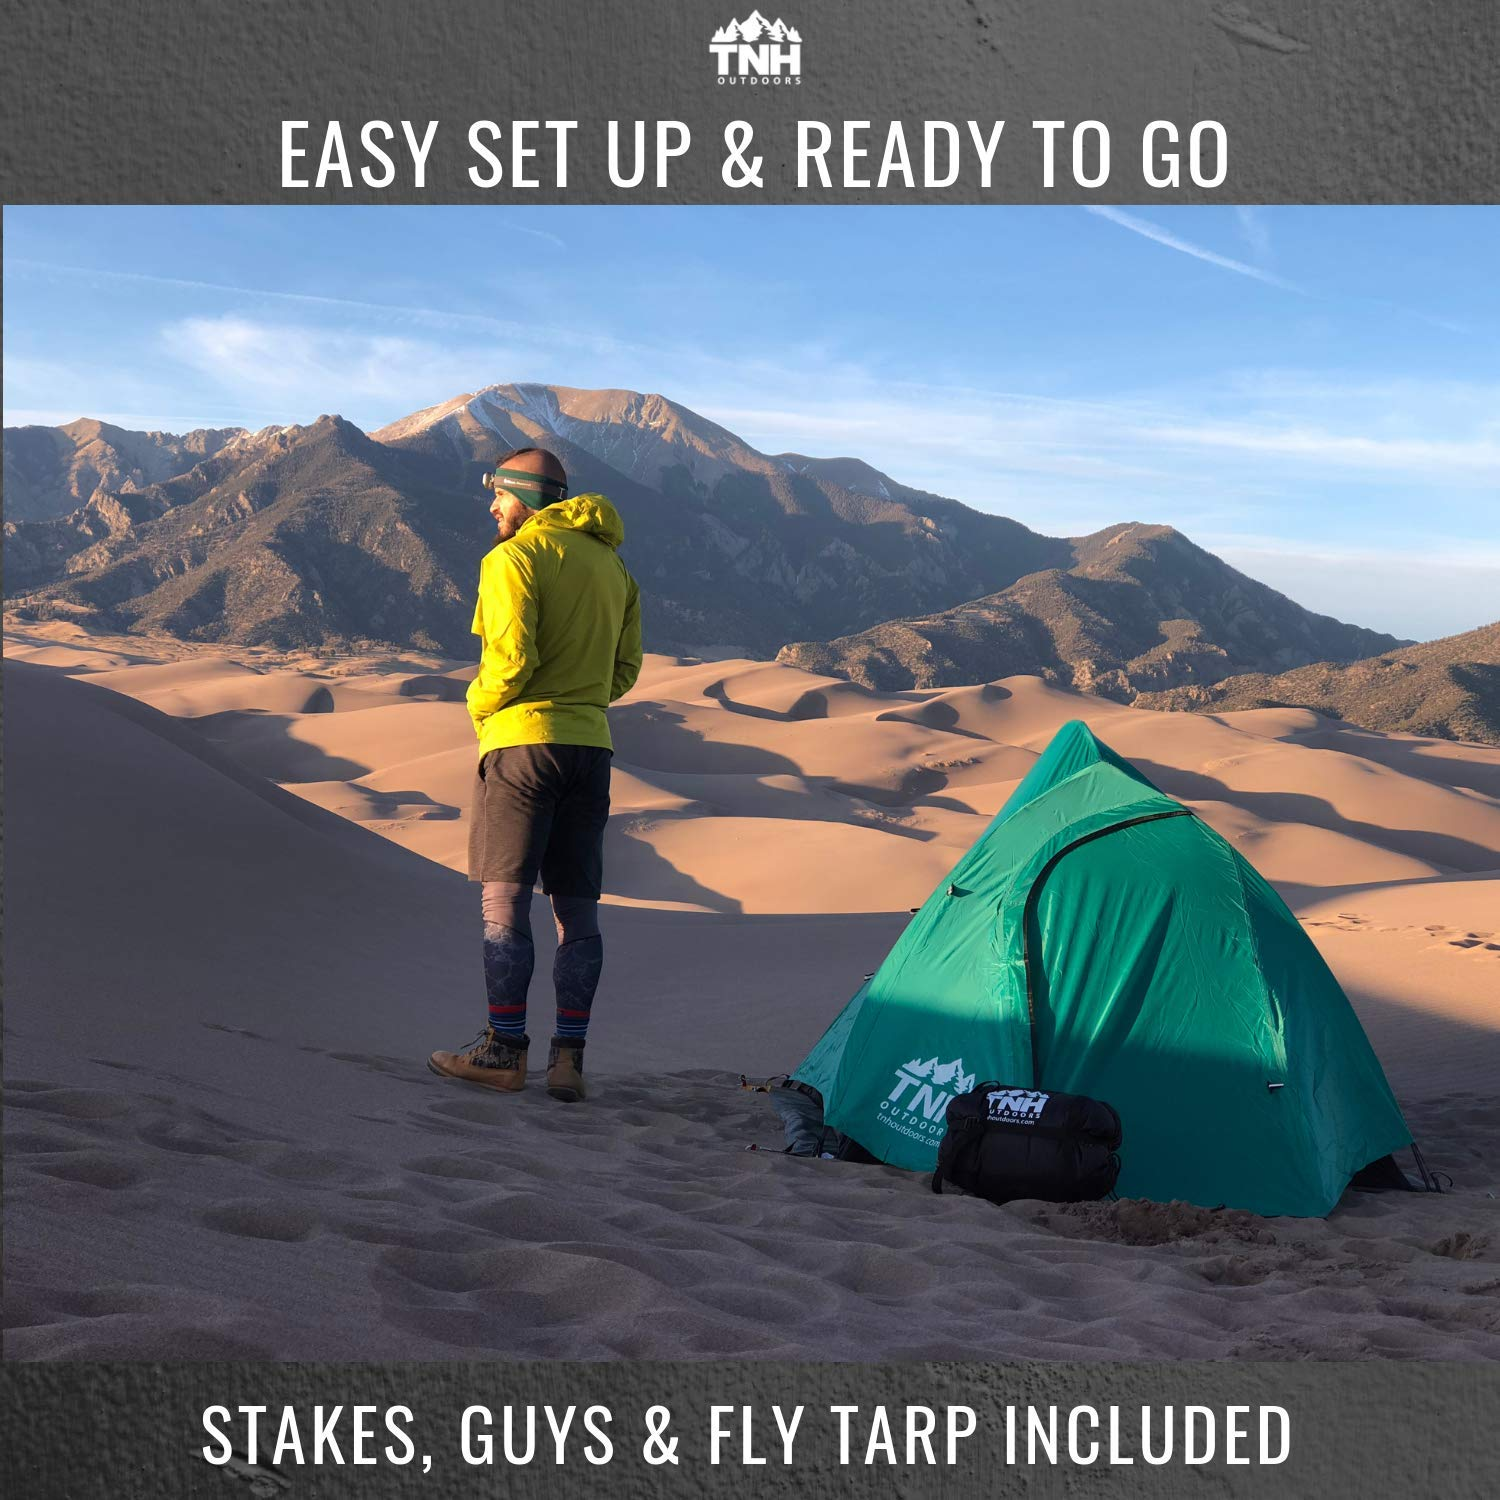 TNH Outdoors 2 Person Camping /& Backpacking Tent with Carry Bag and Stakes Portable Lightweight Easy Setup Hiking Tent